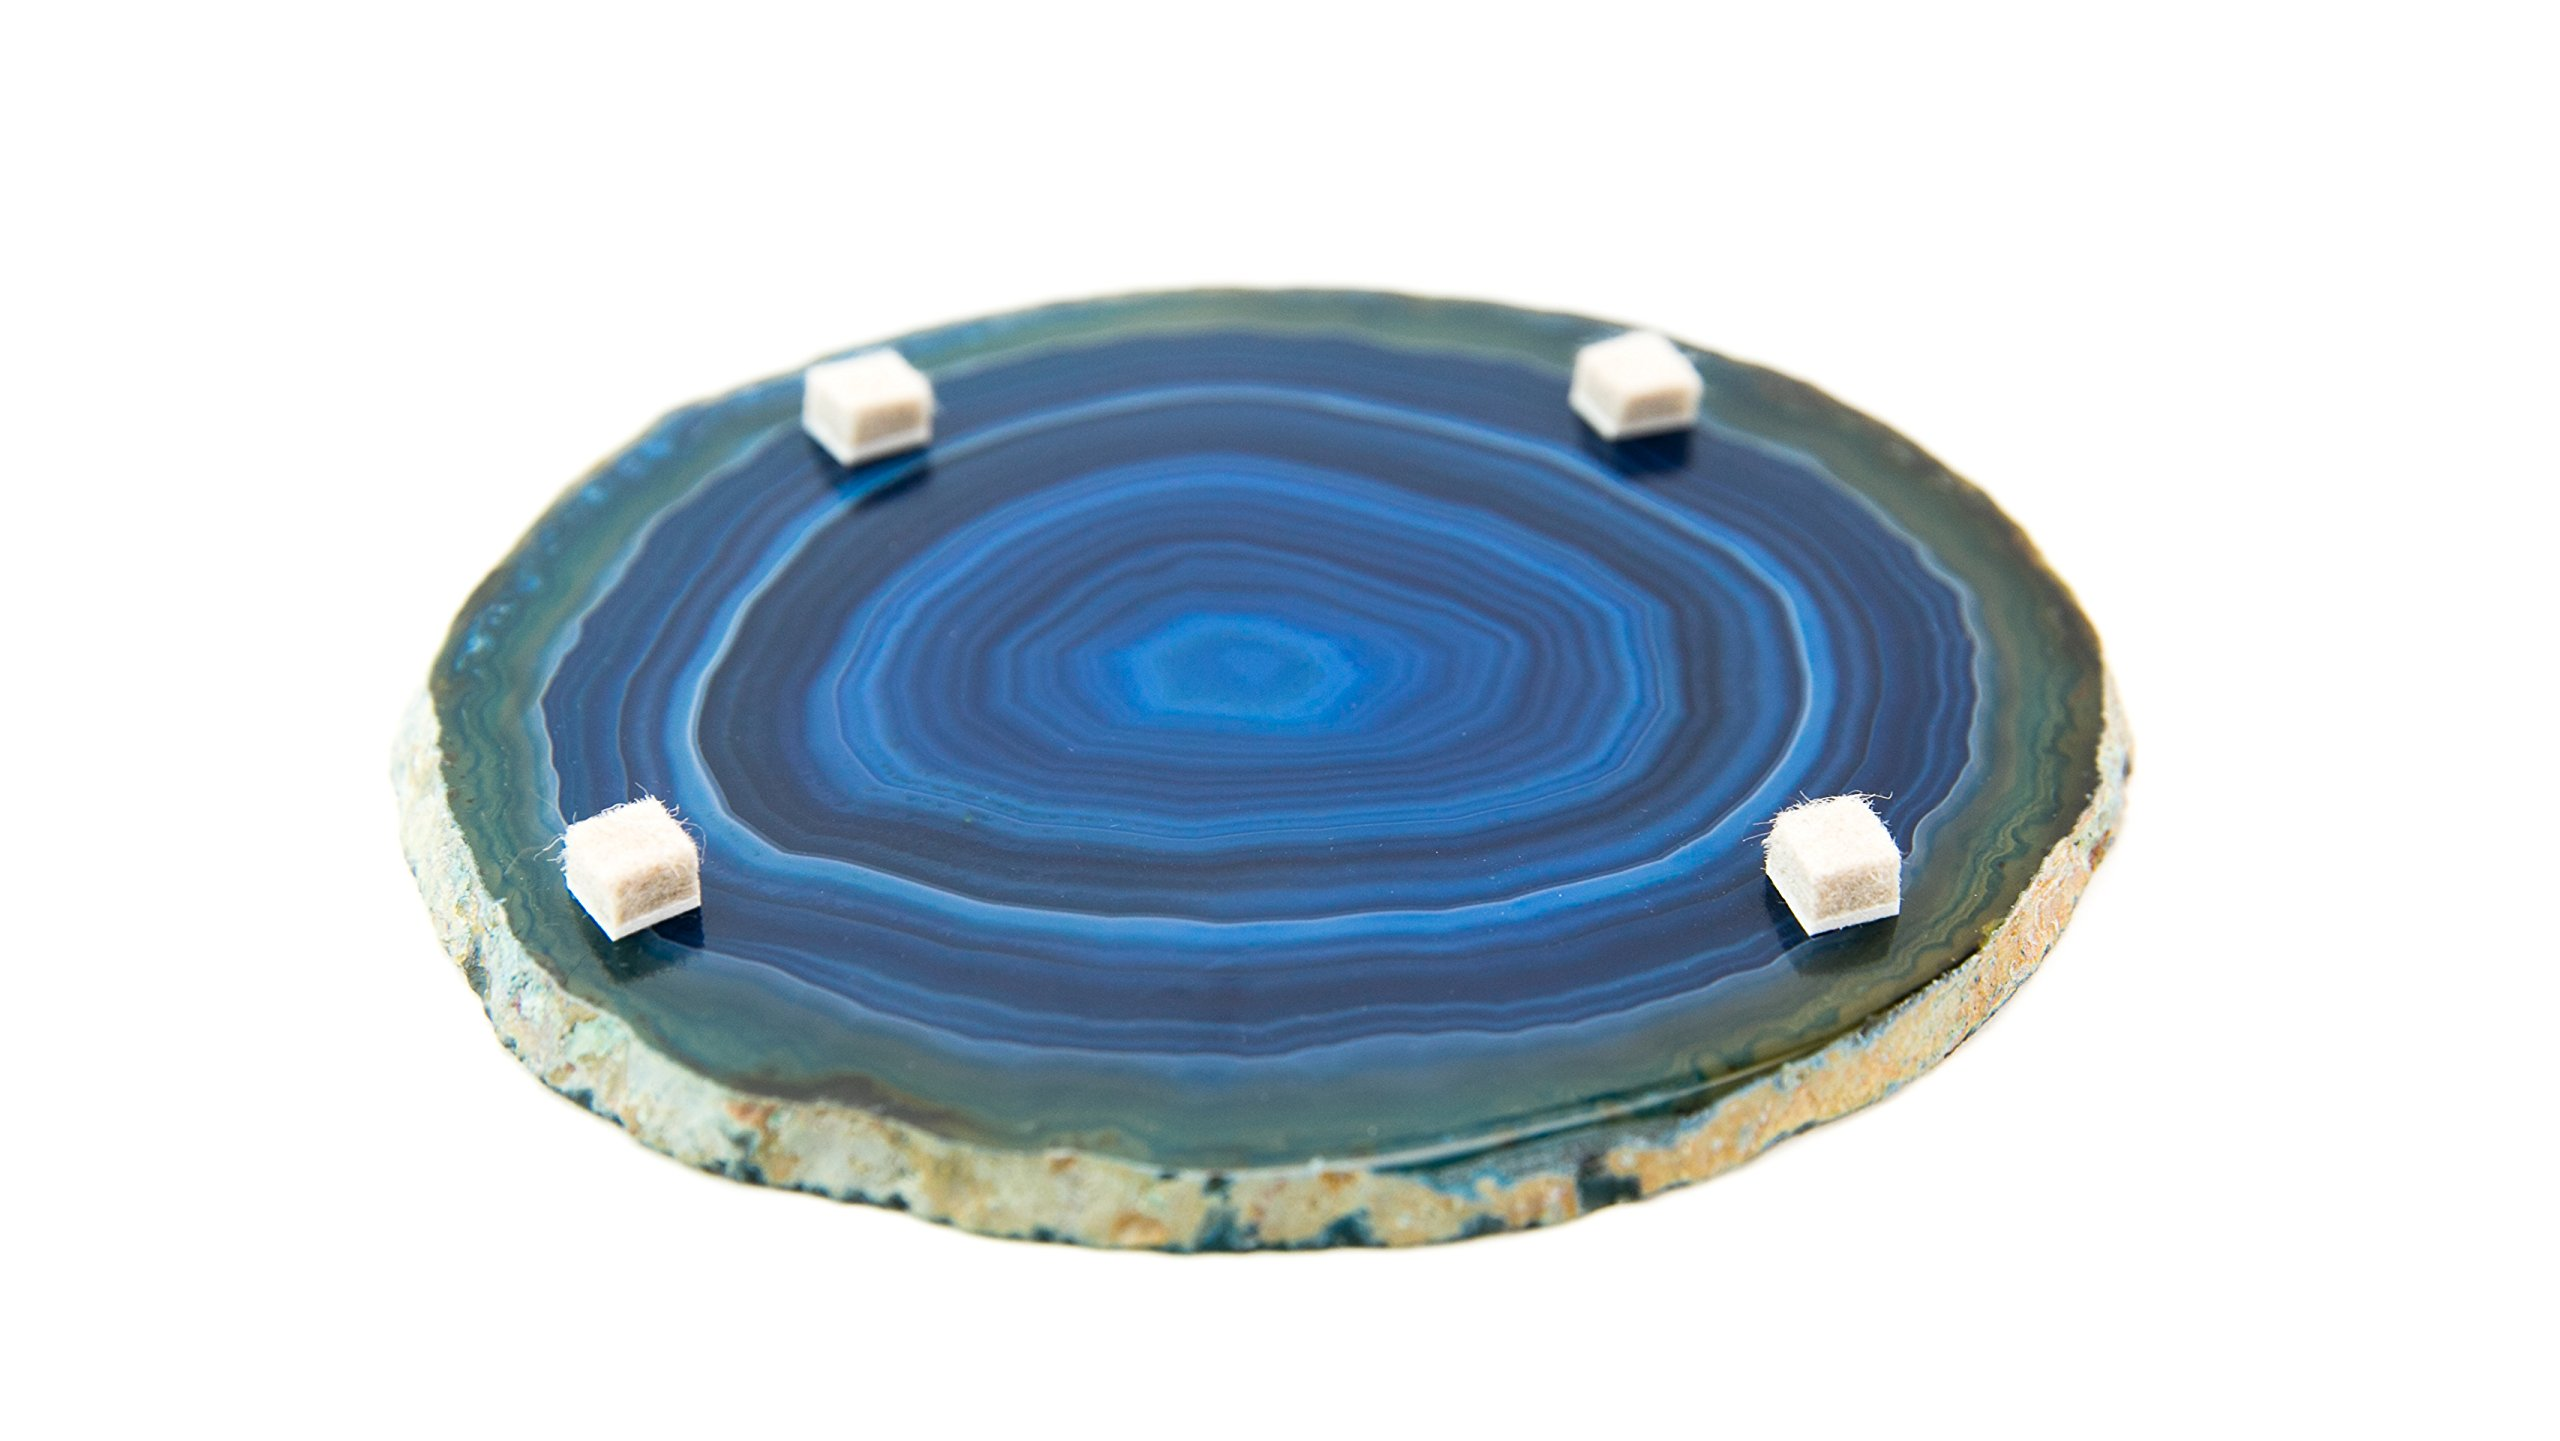 LARGE BLUE AGATE COASTERS Set of 4 Sliced Thick with Felt Bumper (4-5) | Authentic Handmade Brazilian coasters packaged in the USA by Babylon Agate (Image #6)